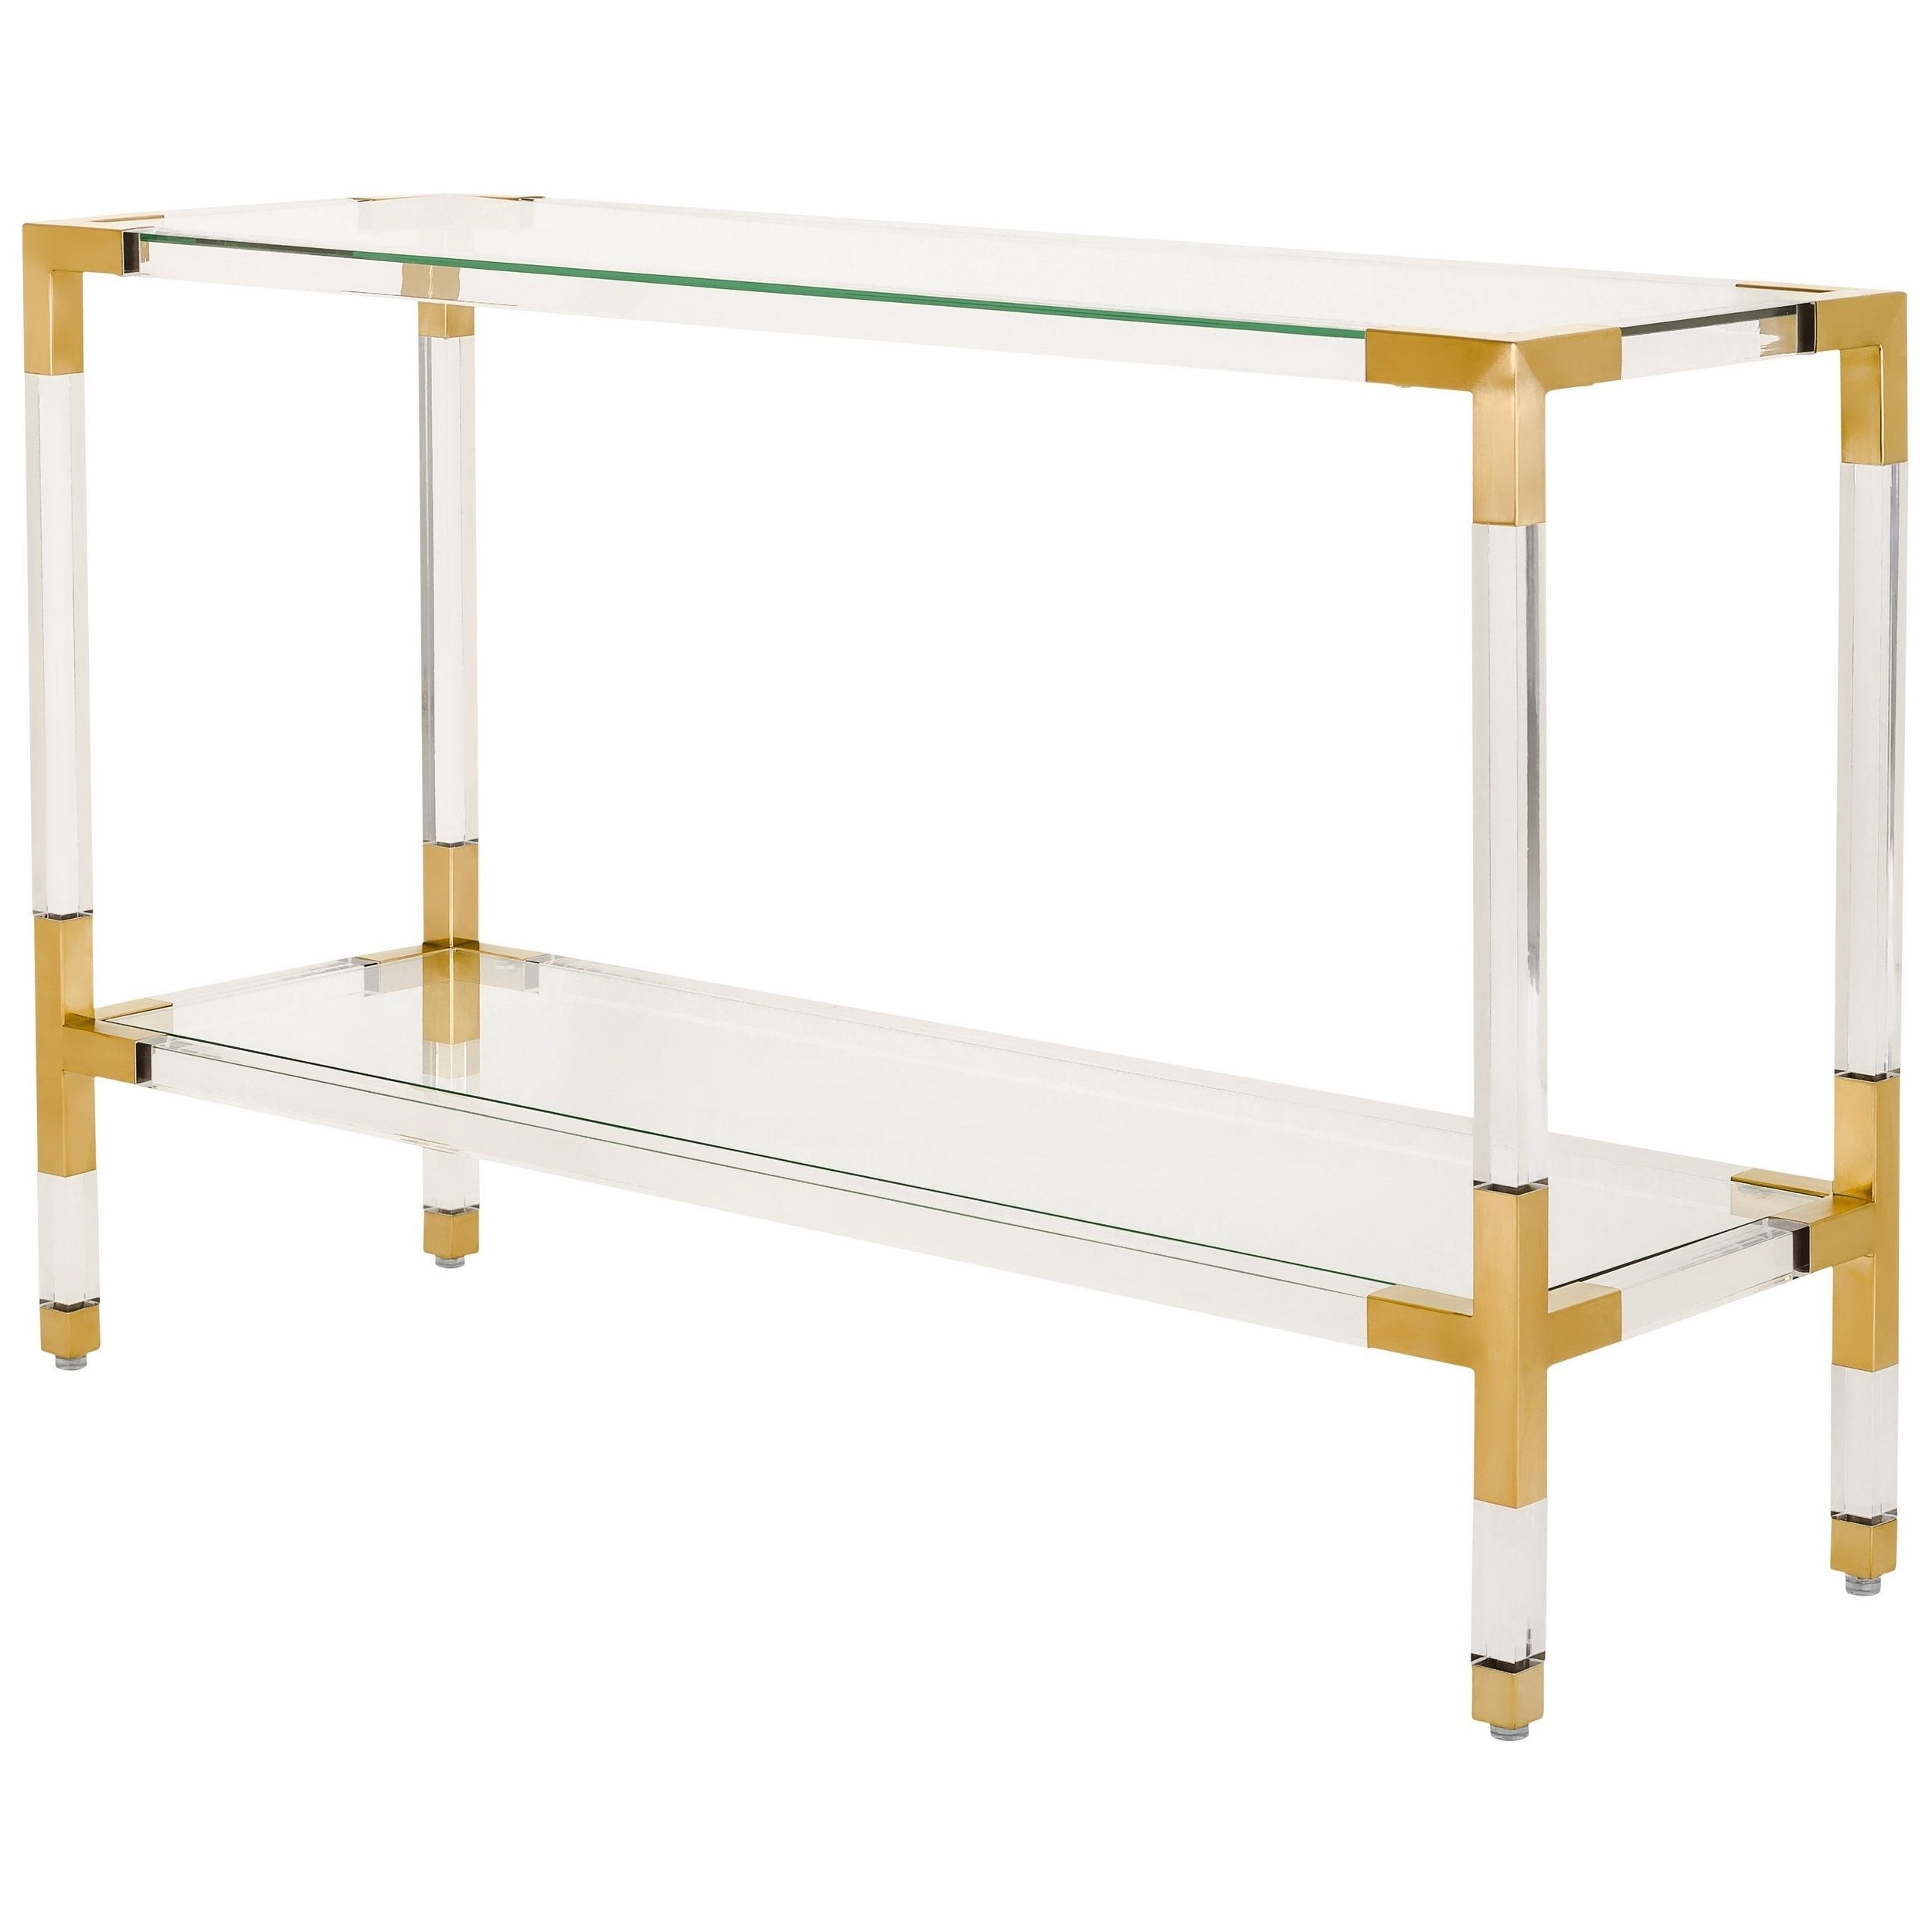 Safavieh Couture Arverne Acrylic Console , Clear | Pinterest In Parsons Clear Glass Top & Stainless Steel Base 48X16 Console Tables (Gallery 9 of 20)